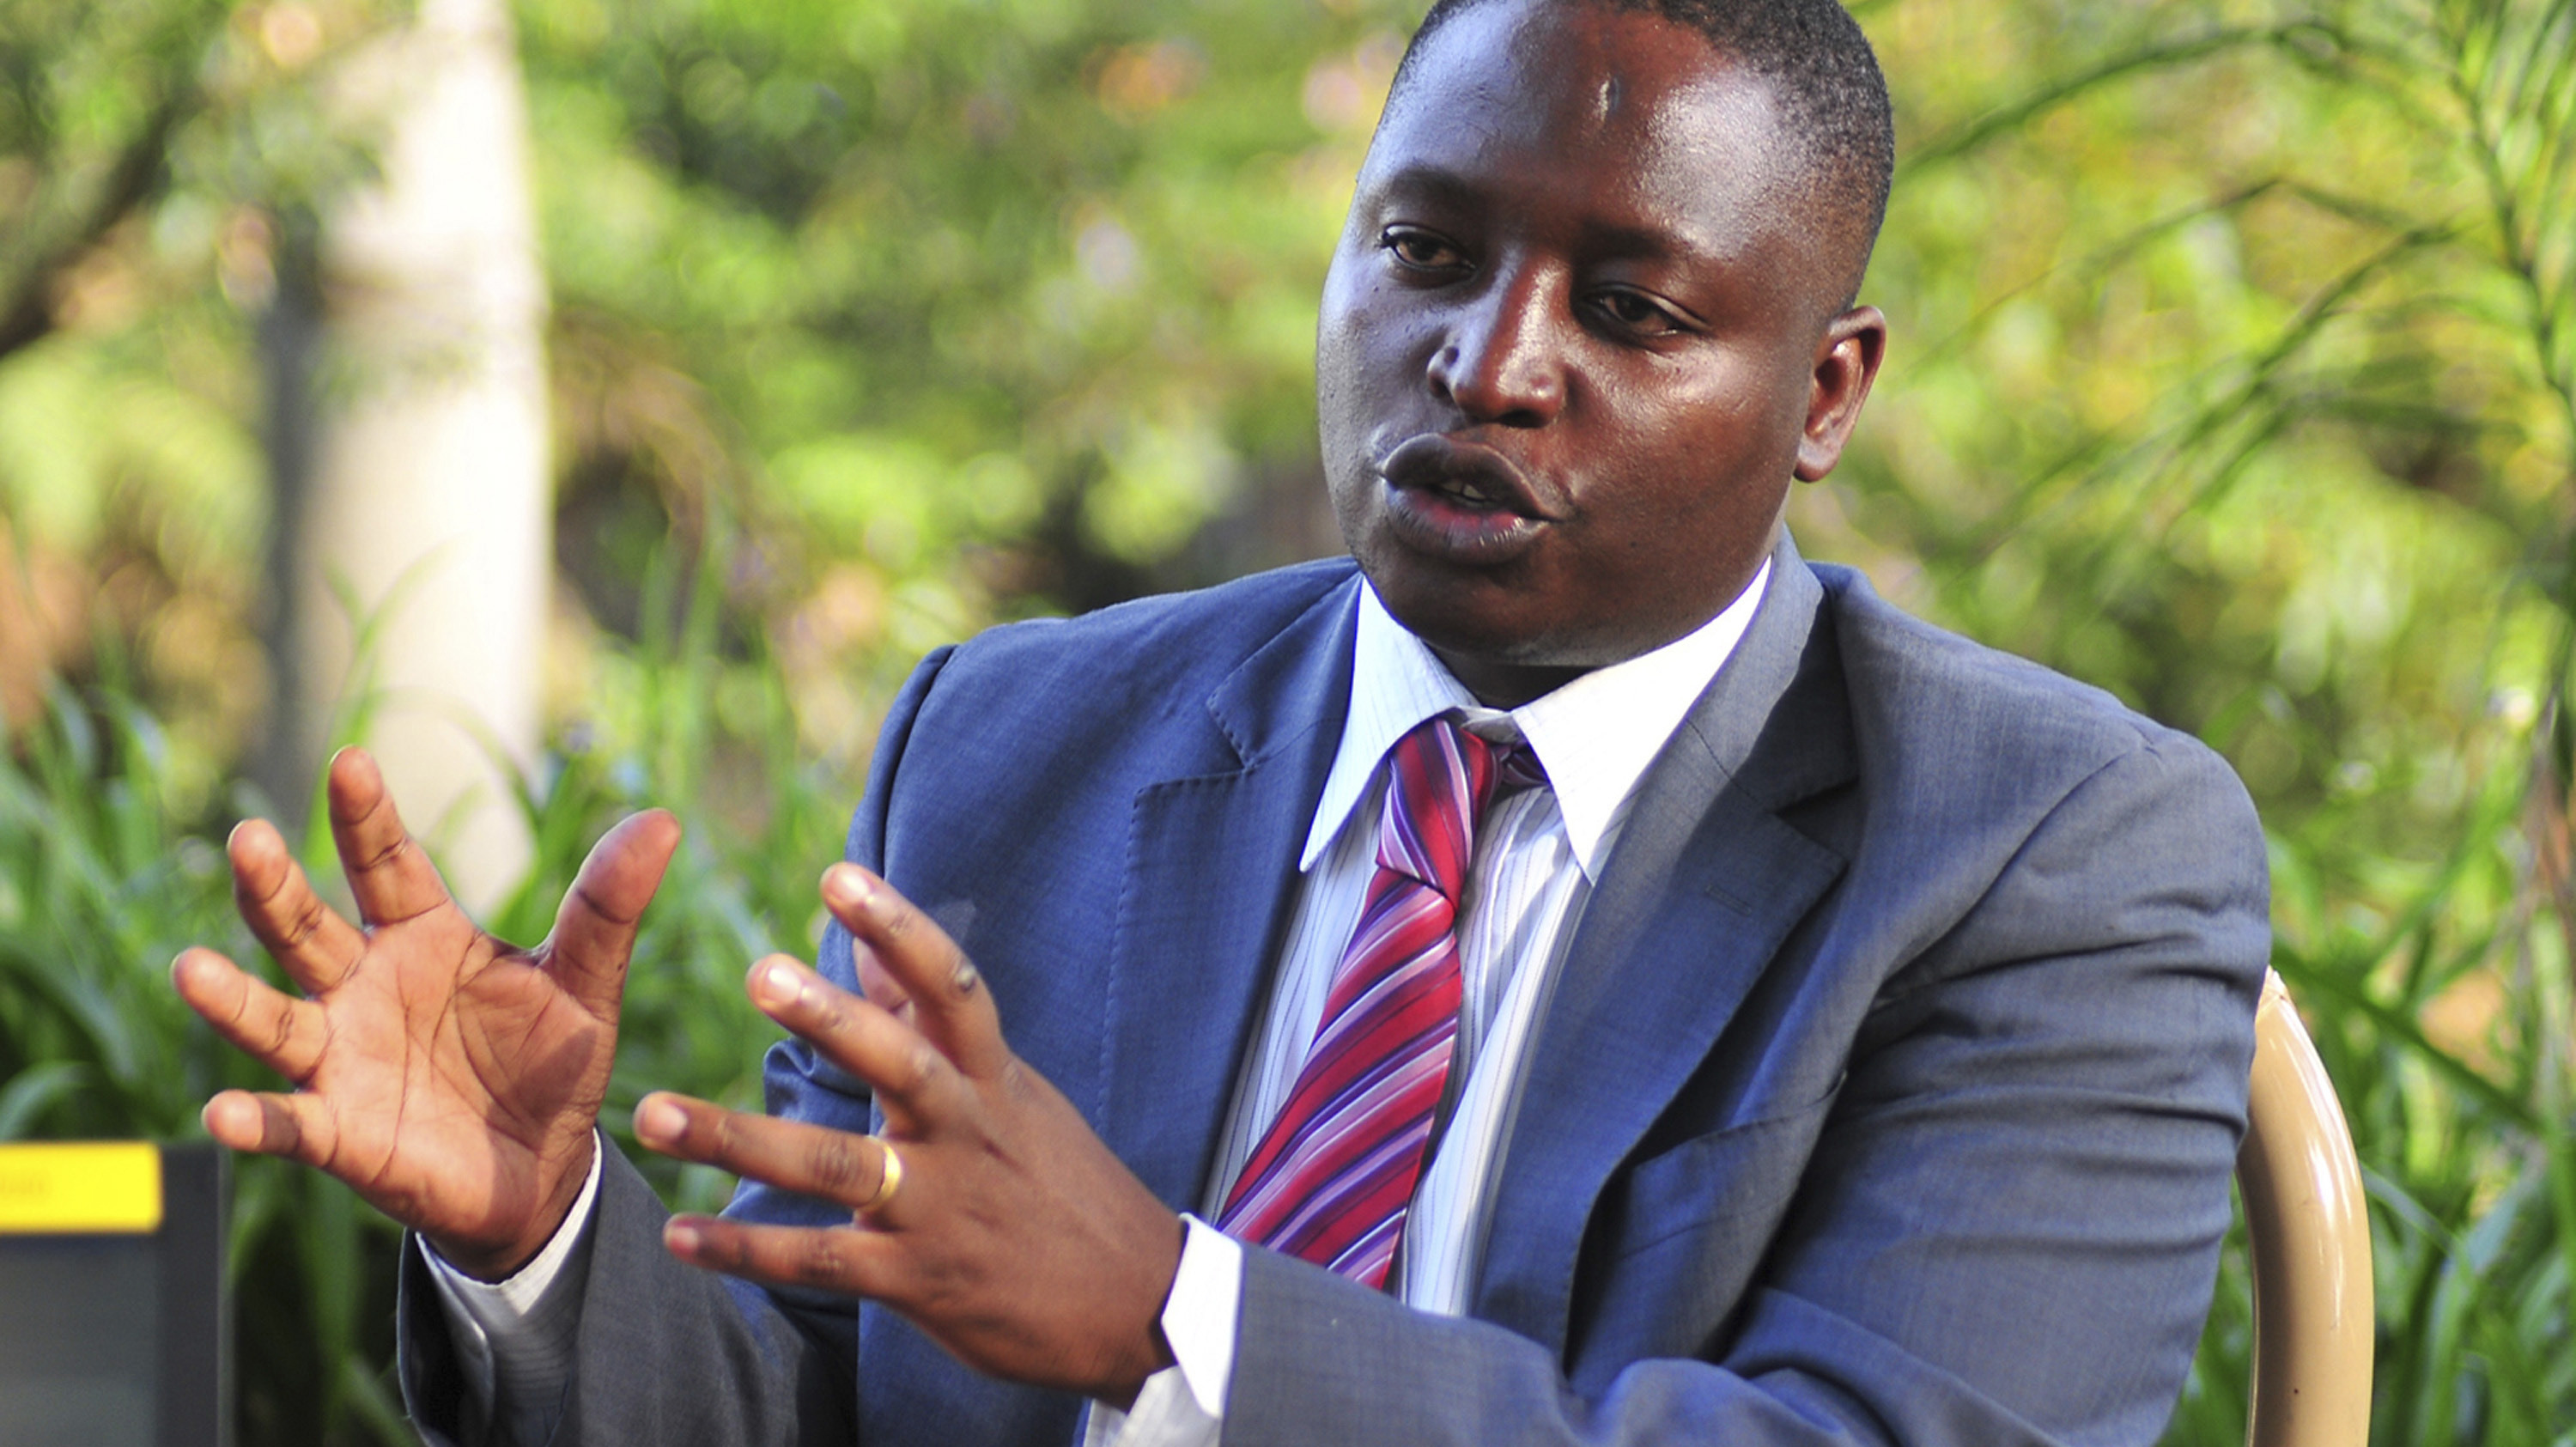 David Bahati, a member of Uganda's Parliament, is interviewed in 2011. Bahati was the driving force behind a controversial anti-gay bill that was approved Friday.